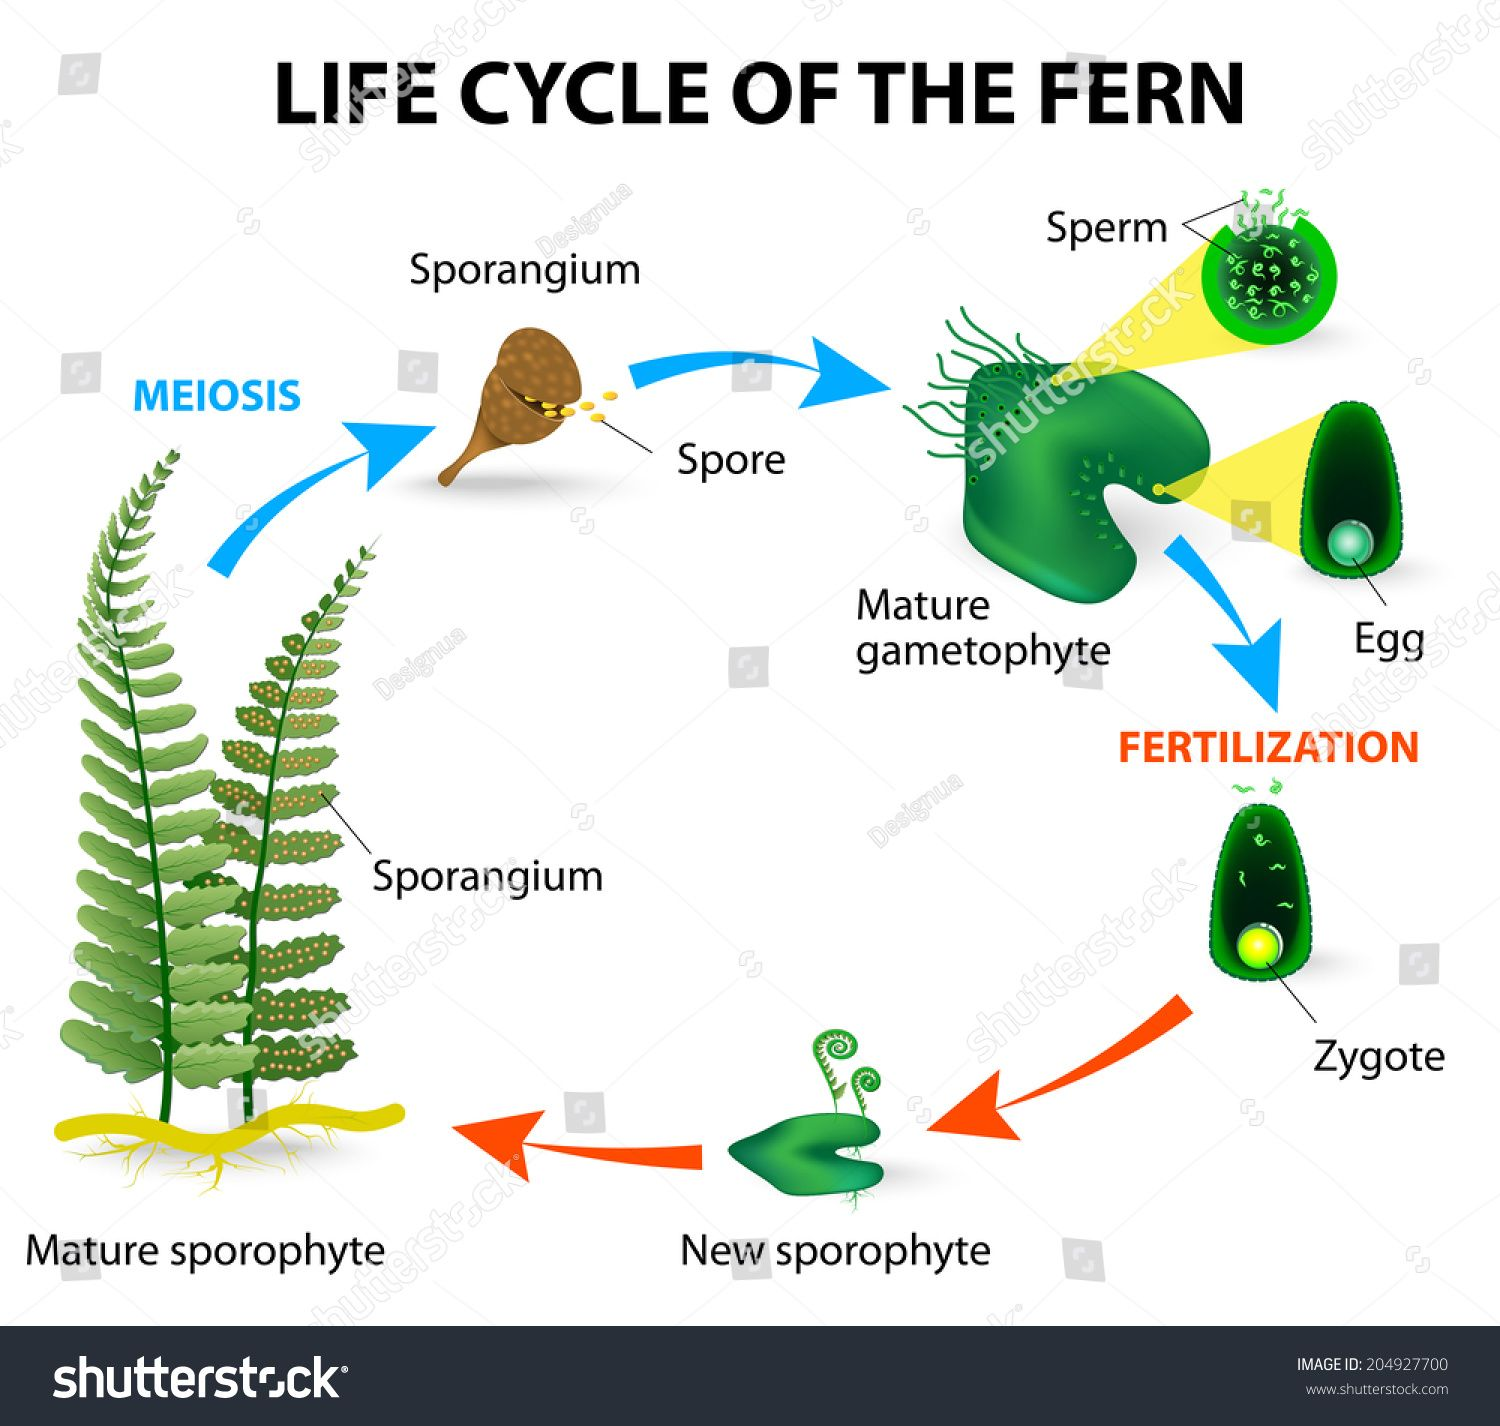 The Life Cycle Of Ferns Is Different From Other Land Plants As Both The Gametophyte And The Sporophyte Phases Are Fre Fern Life Cycle Life Cycles Plant Science